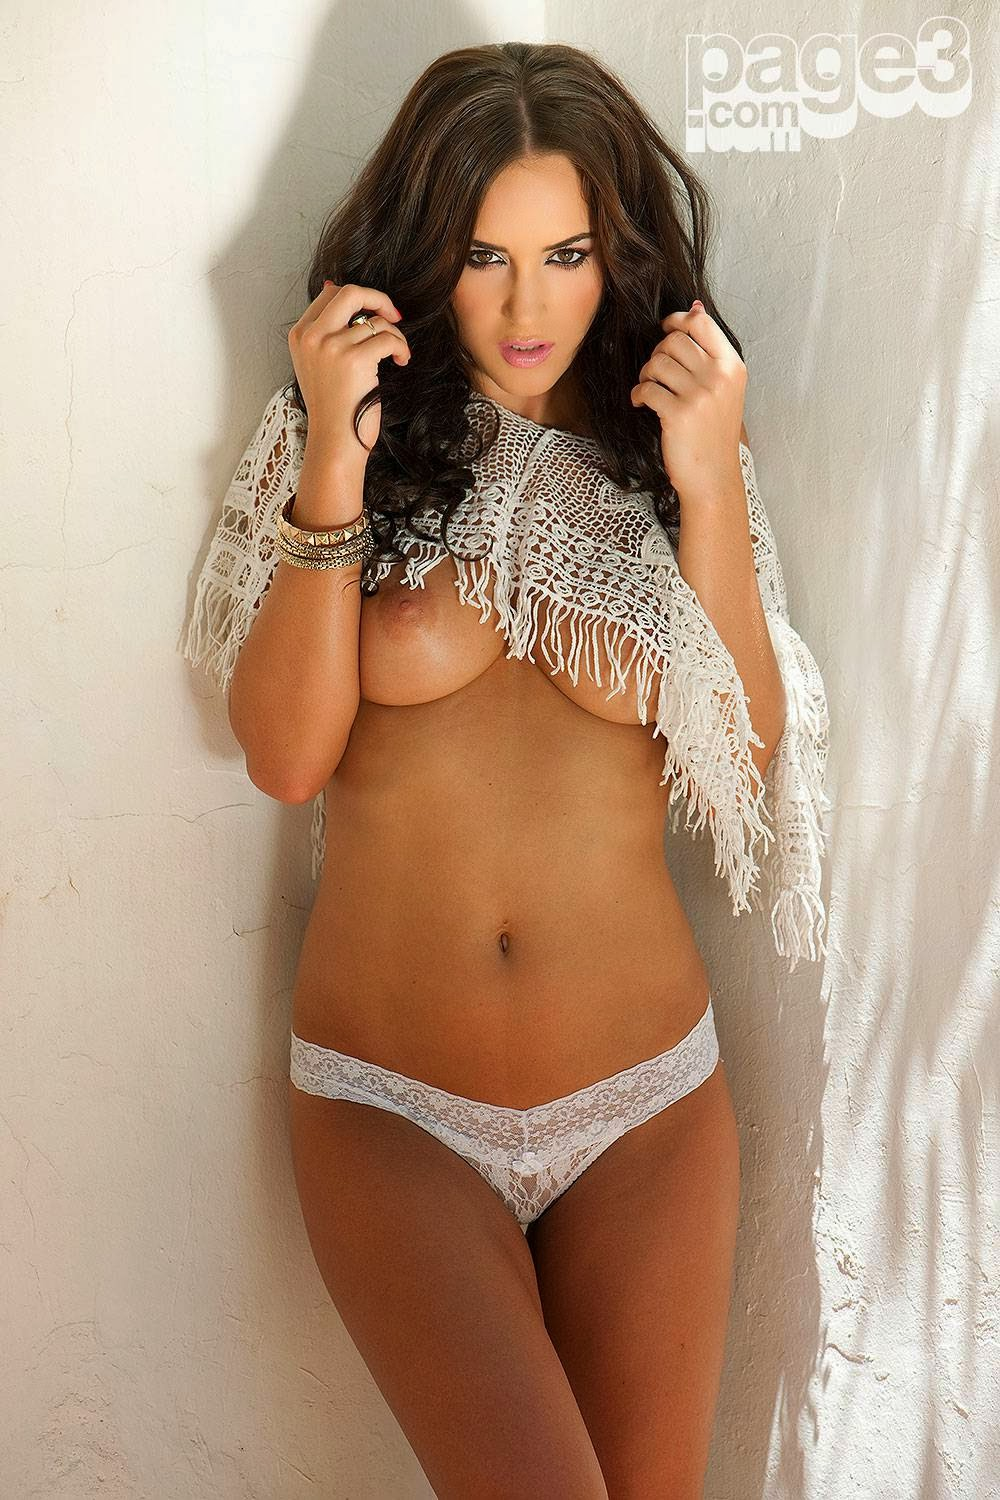 Rosie Jones – Page 3 Topless Photoshoot